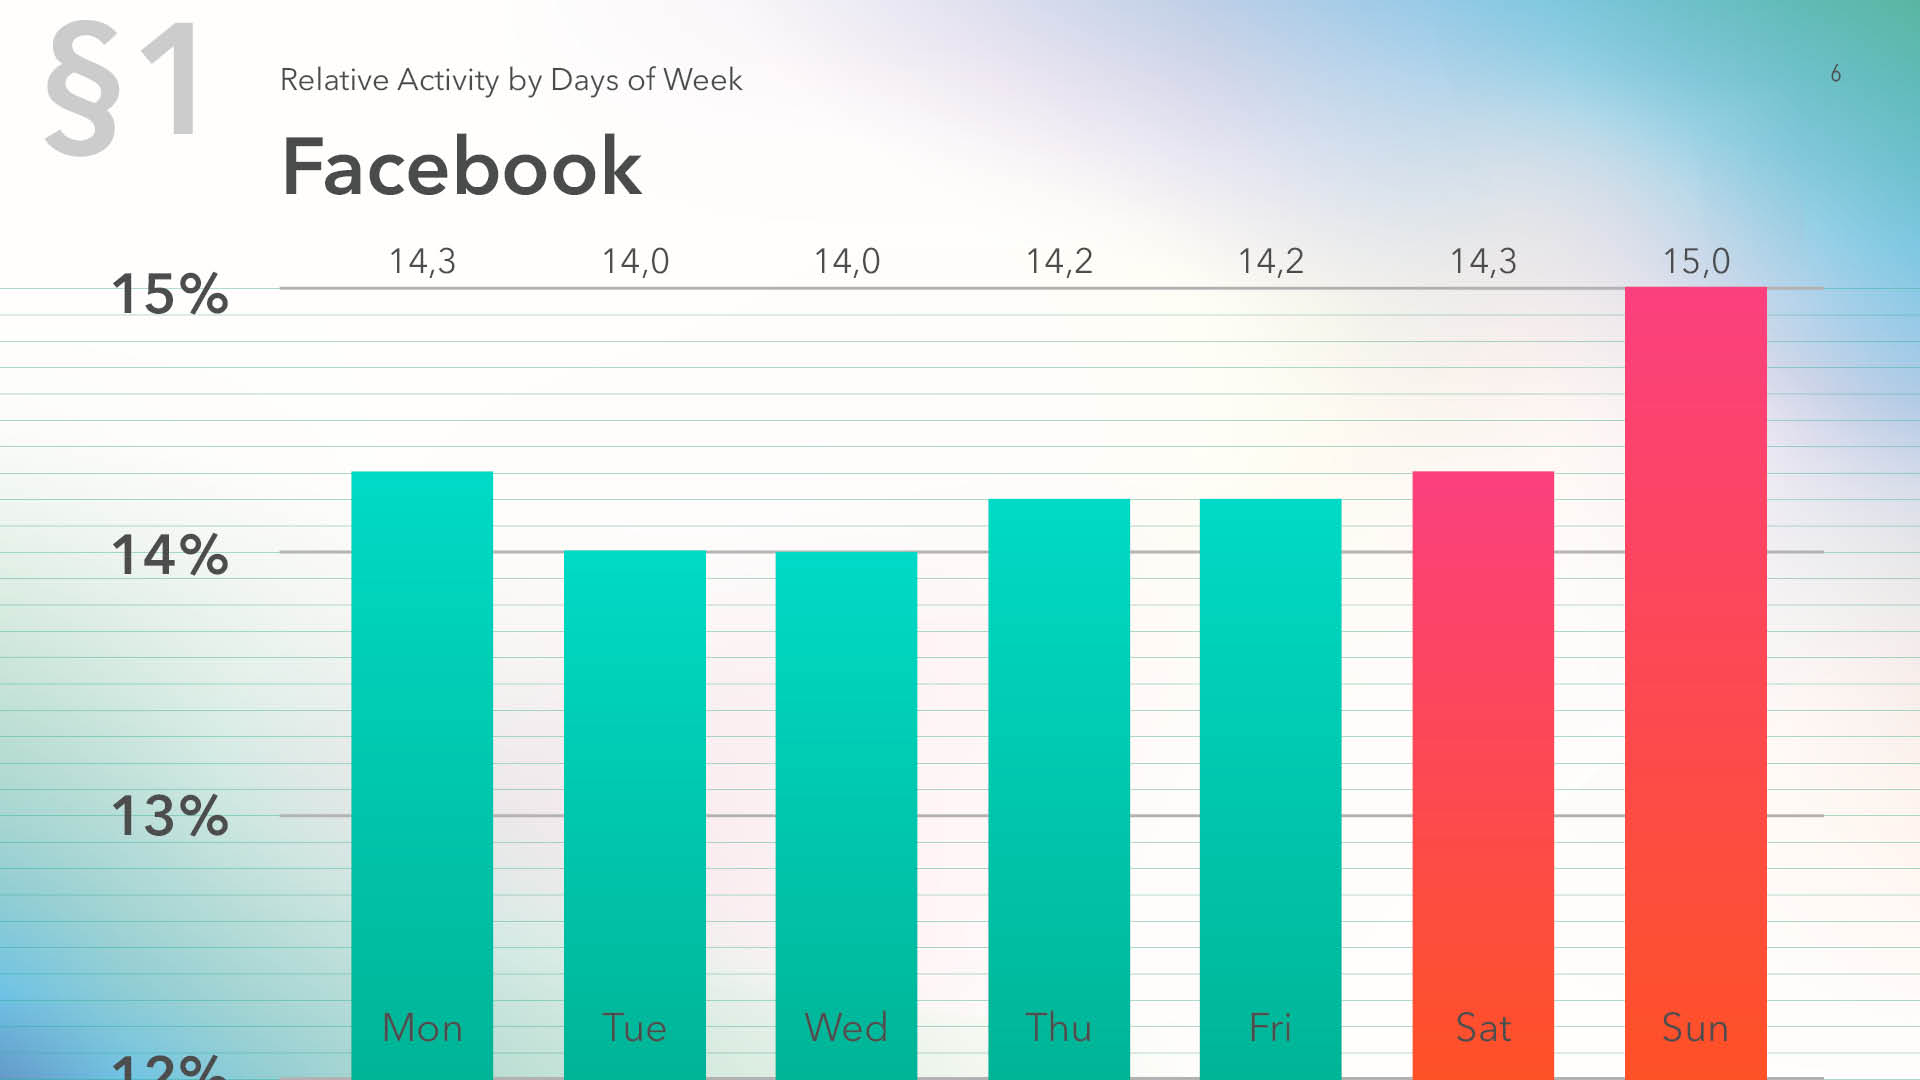 Relative activity on Facebook by days of week, data for 2019